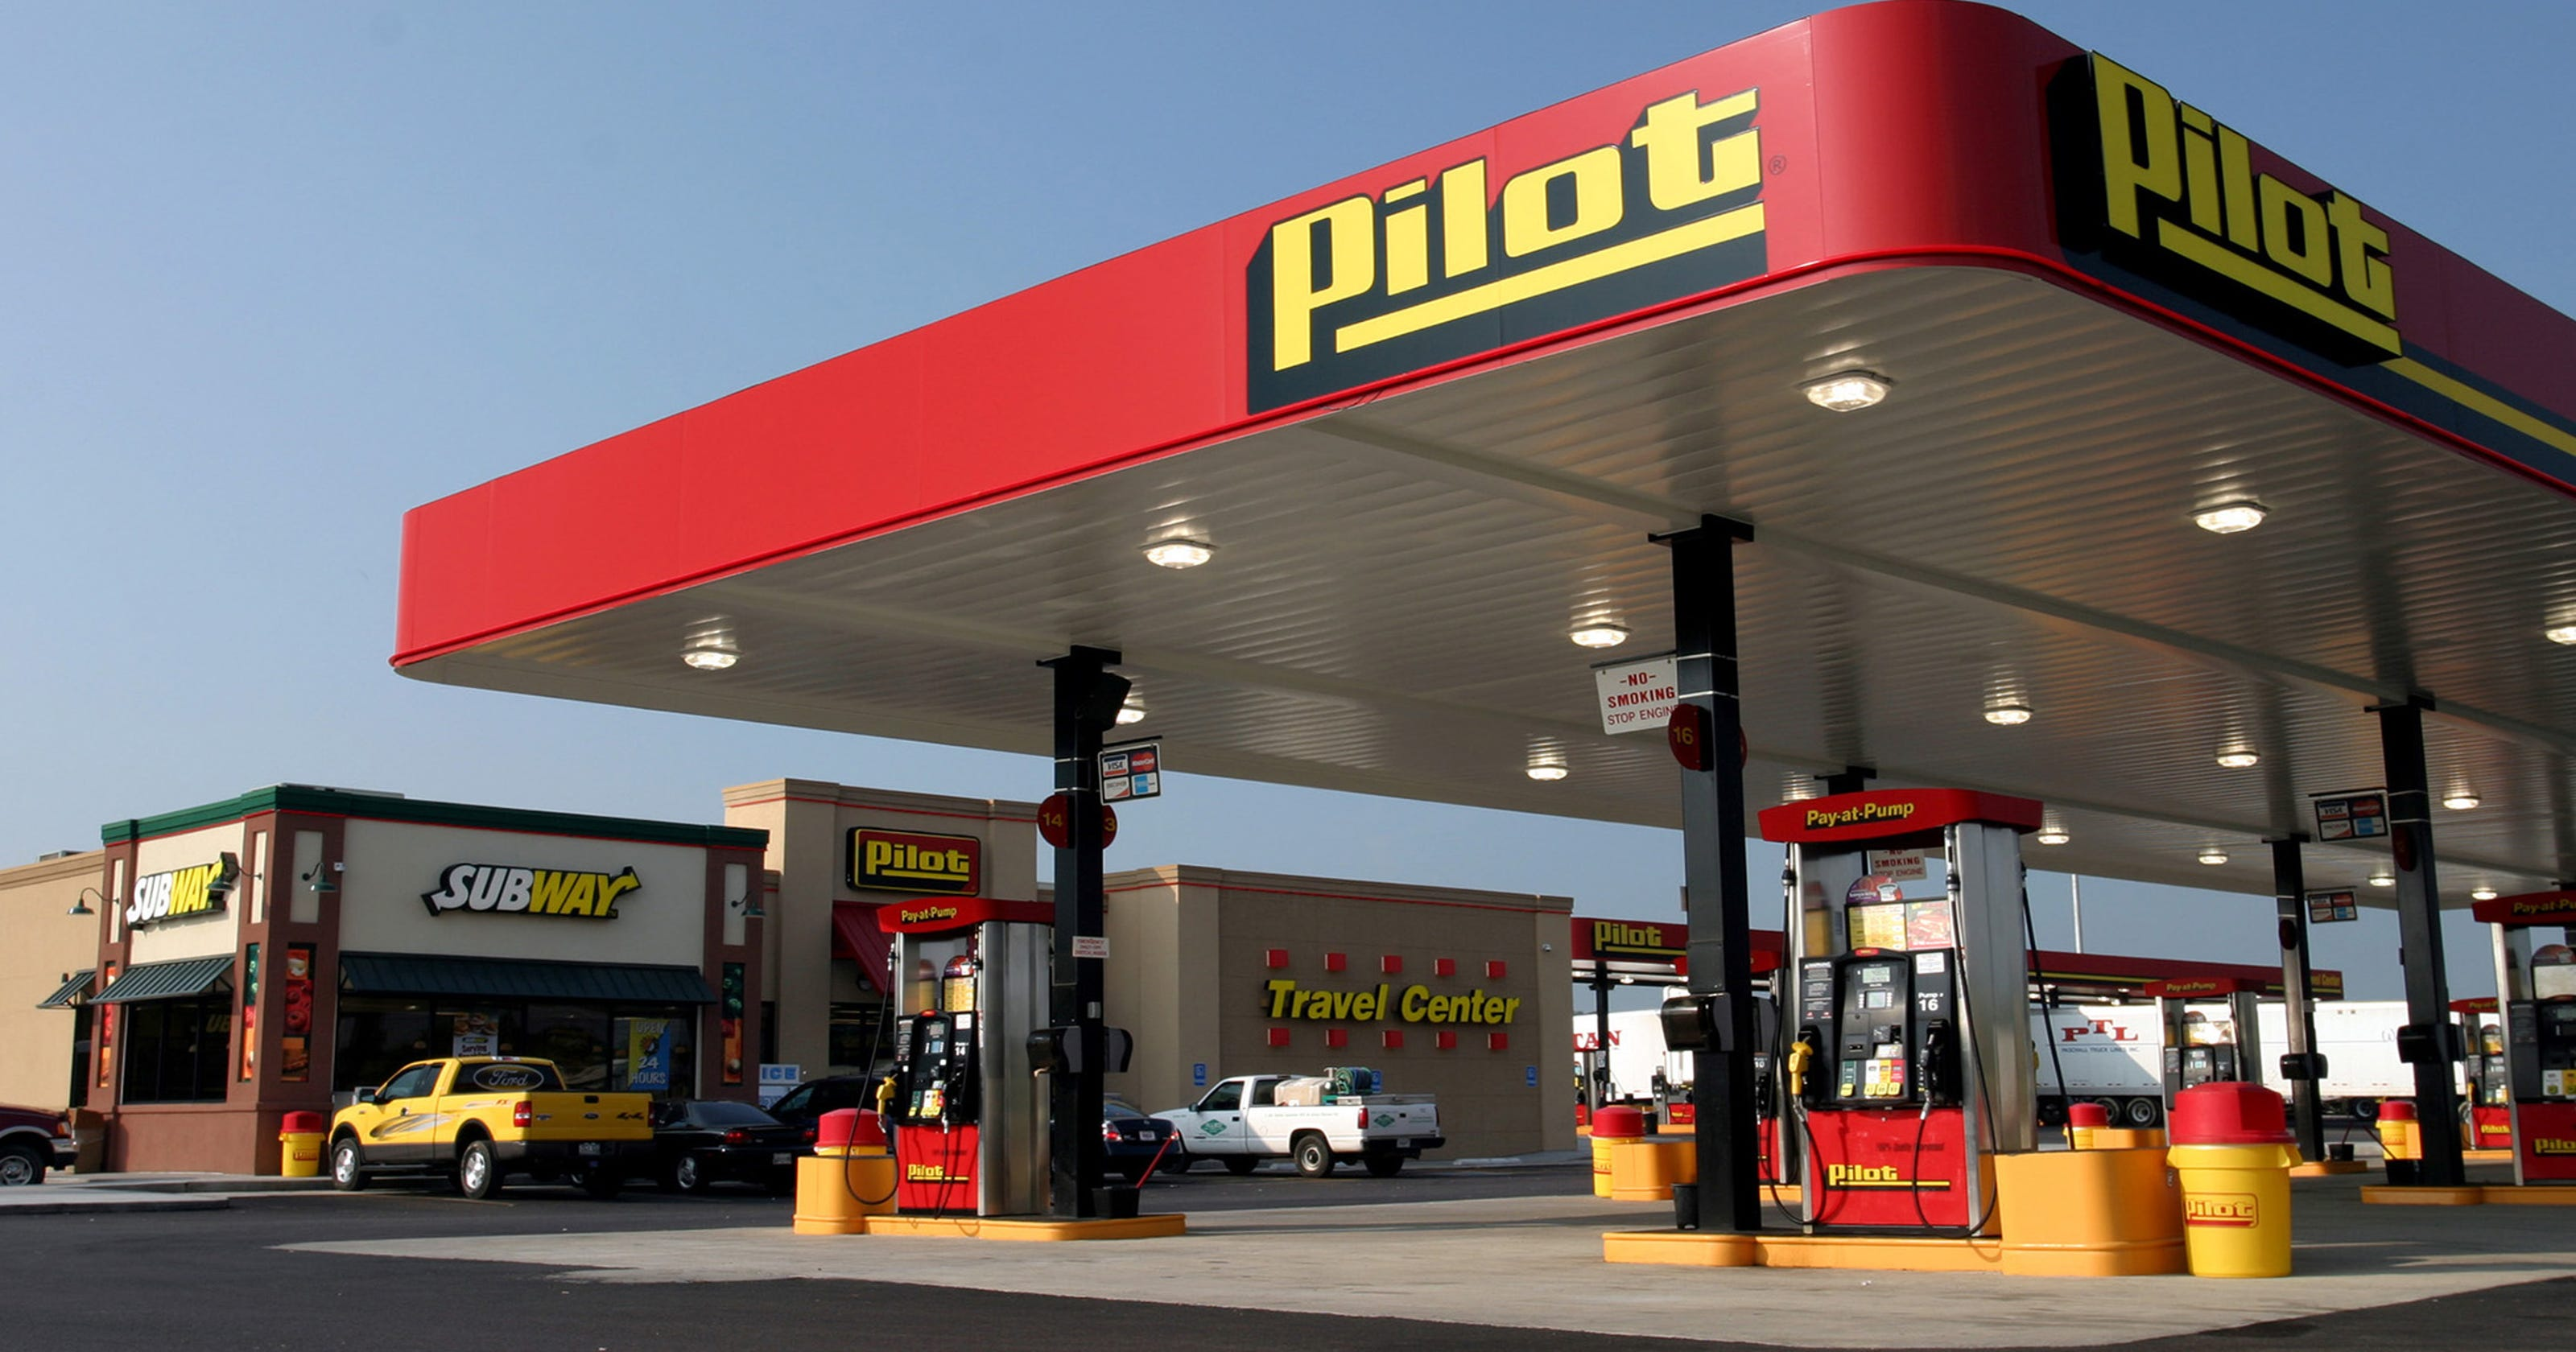 600164d34af Warren Buffett s Berkshire Hathaway acquiring majority stake in Pilot  Flying J truck stops